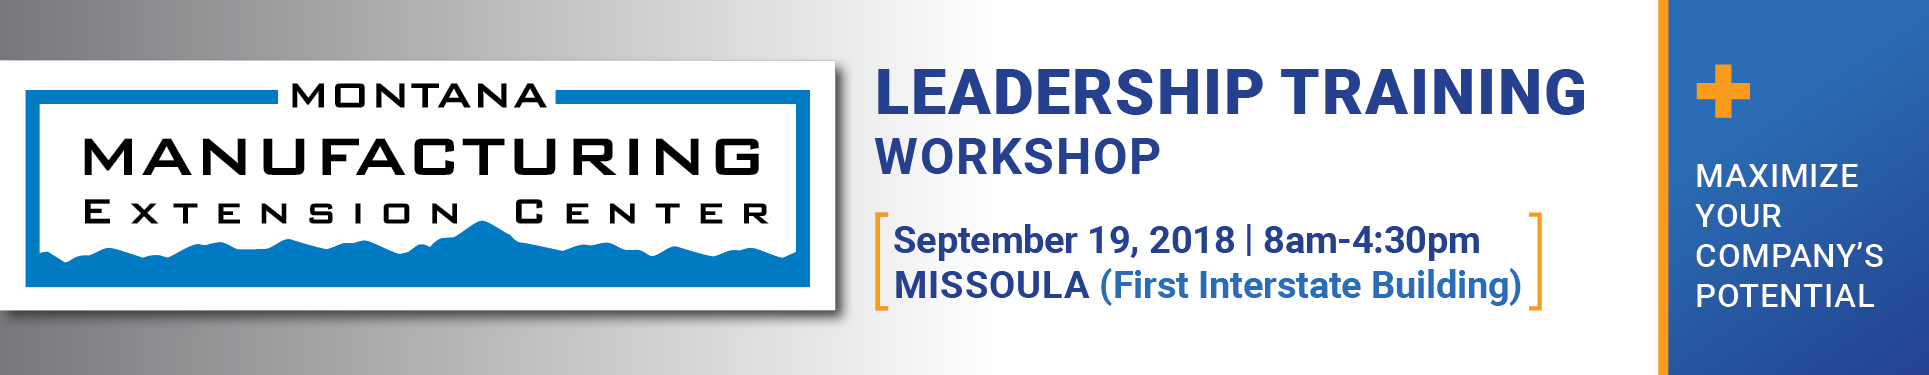 WMMP Leadership Training MSLA 2018-09-19